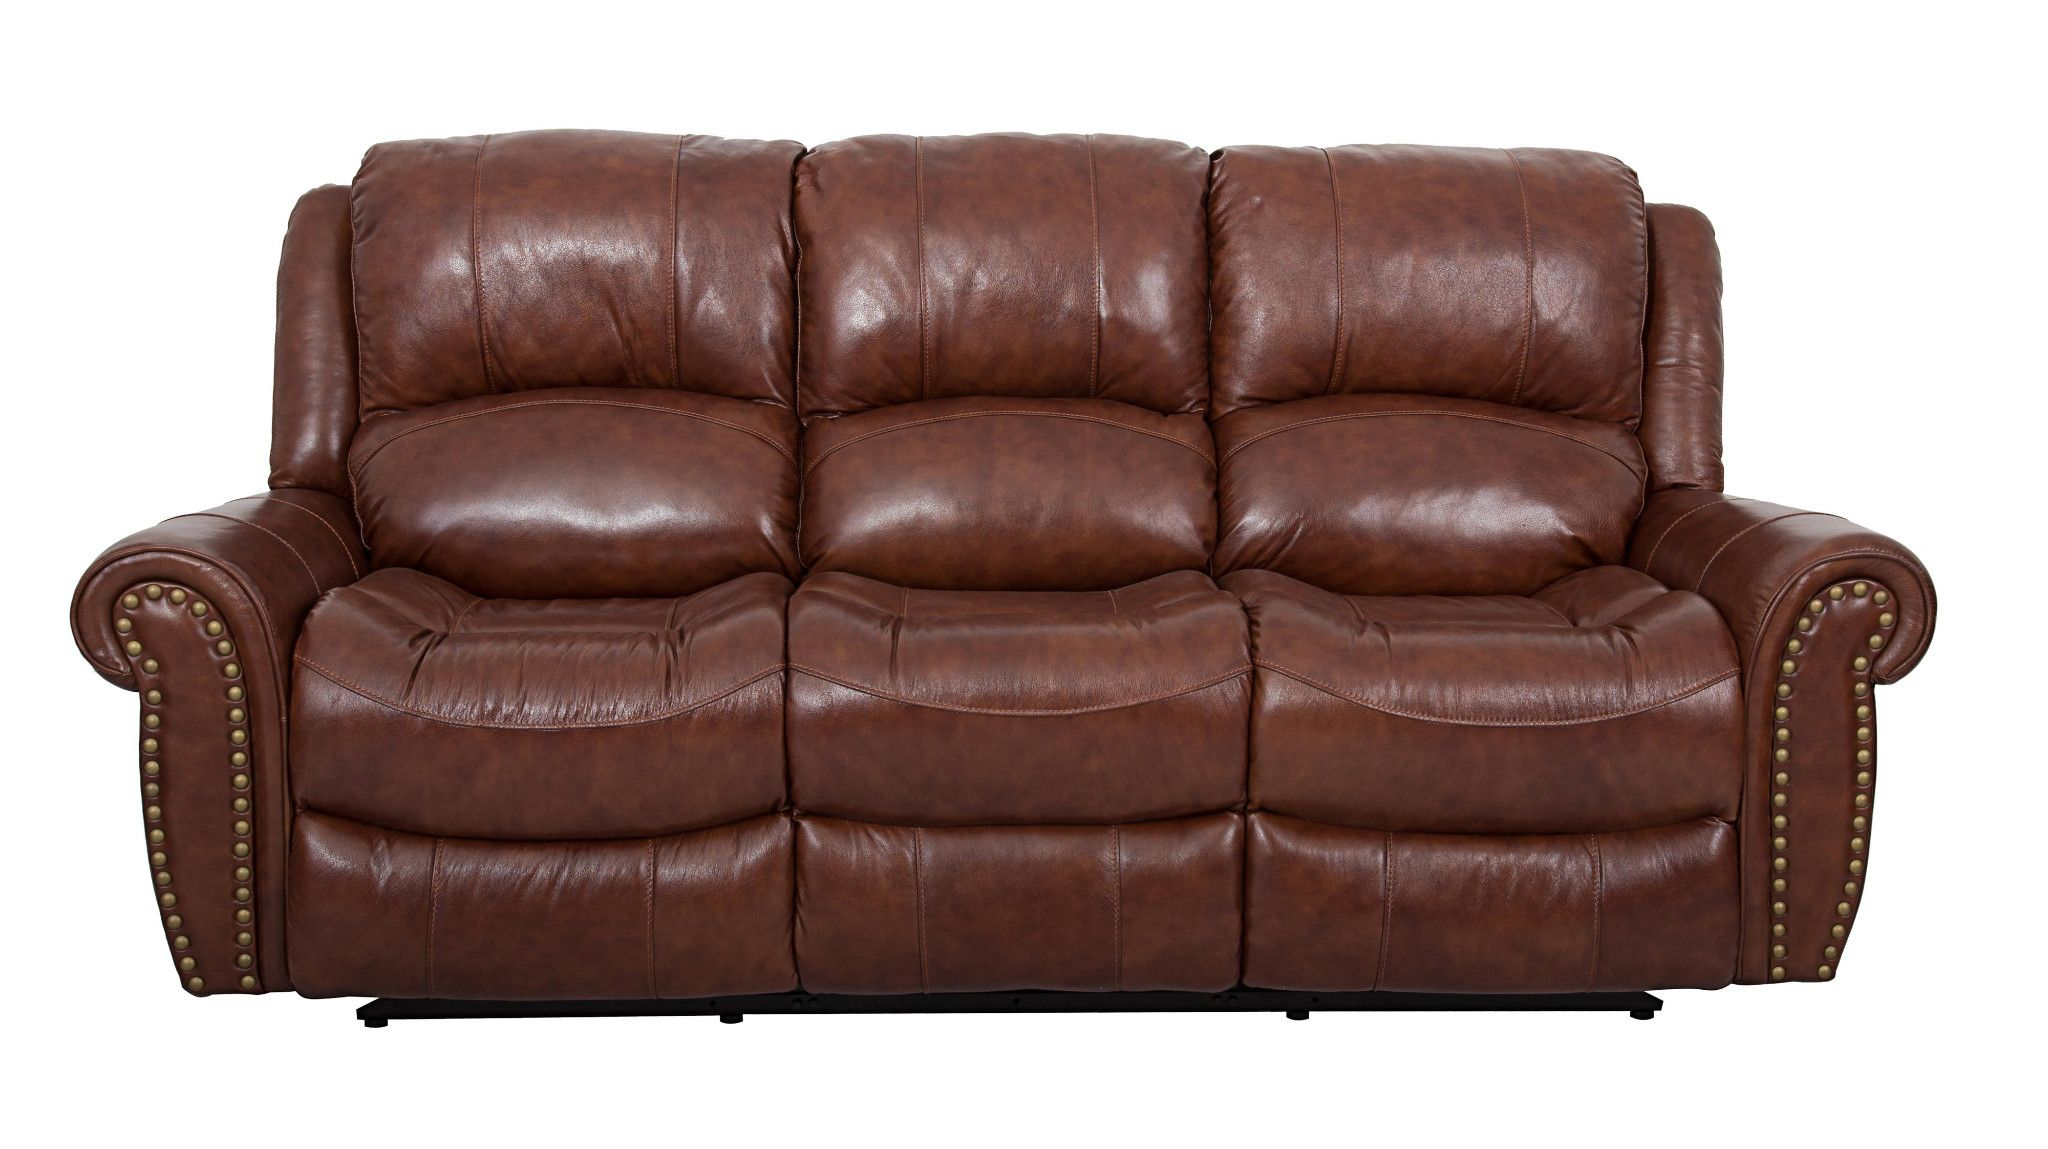 Sofa Pillows Chestnut Nailhead Reclining Sofa and Loveseat Top Grain Genuine Leather Matching Glider Recliner Available